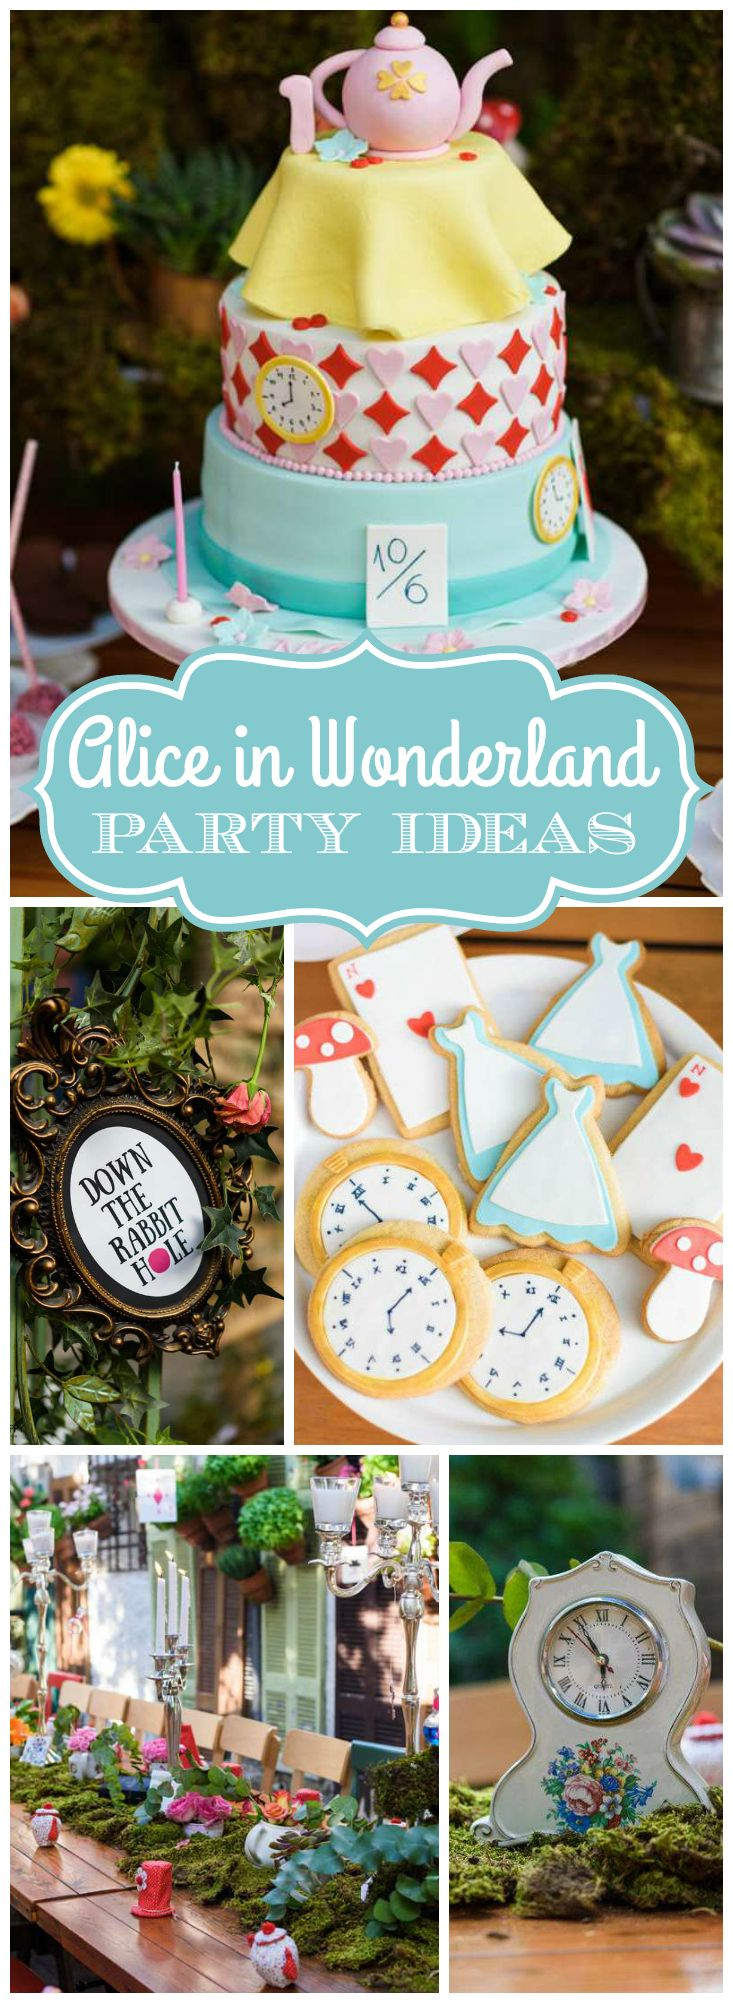 This Alice in Wonderland party has colorful flowers, rabbits, clocks & keys! See more party ideas at CatchMyParty.com!